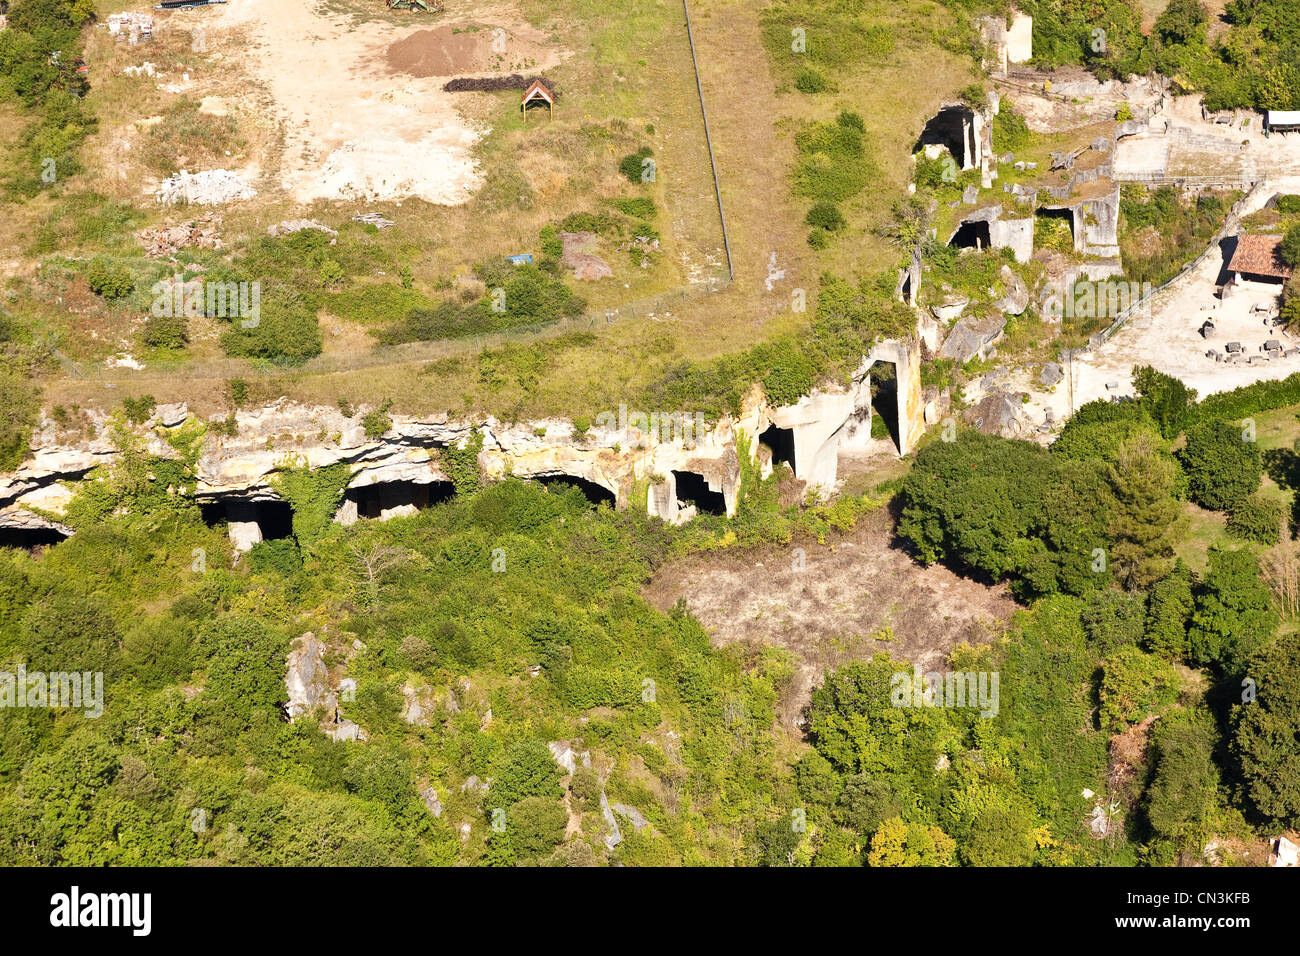 France, Charente, St Même les Carrieres, extraction of stone occurred almost always open until the 17th century - Stock Image